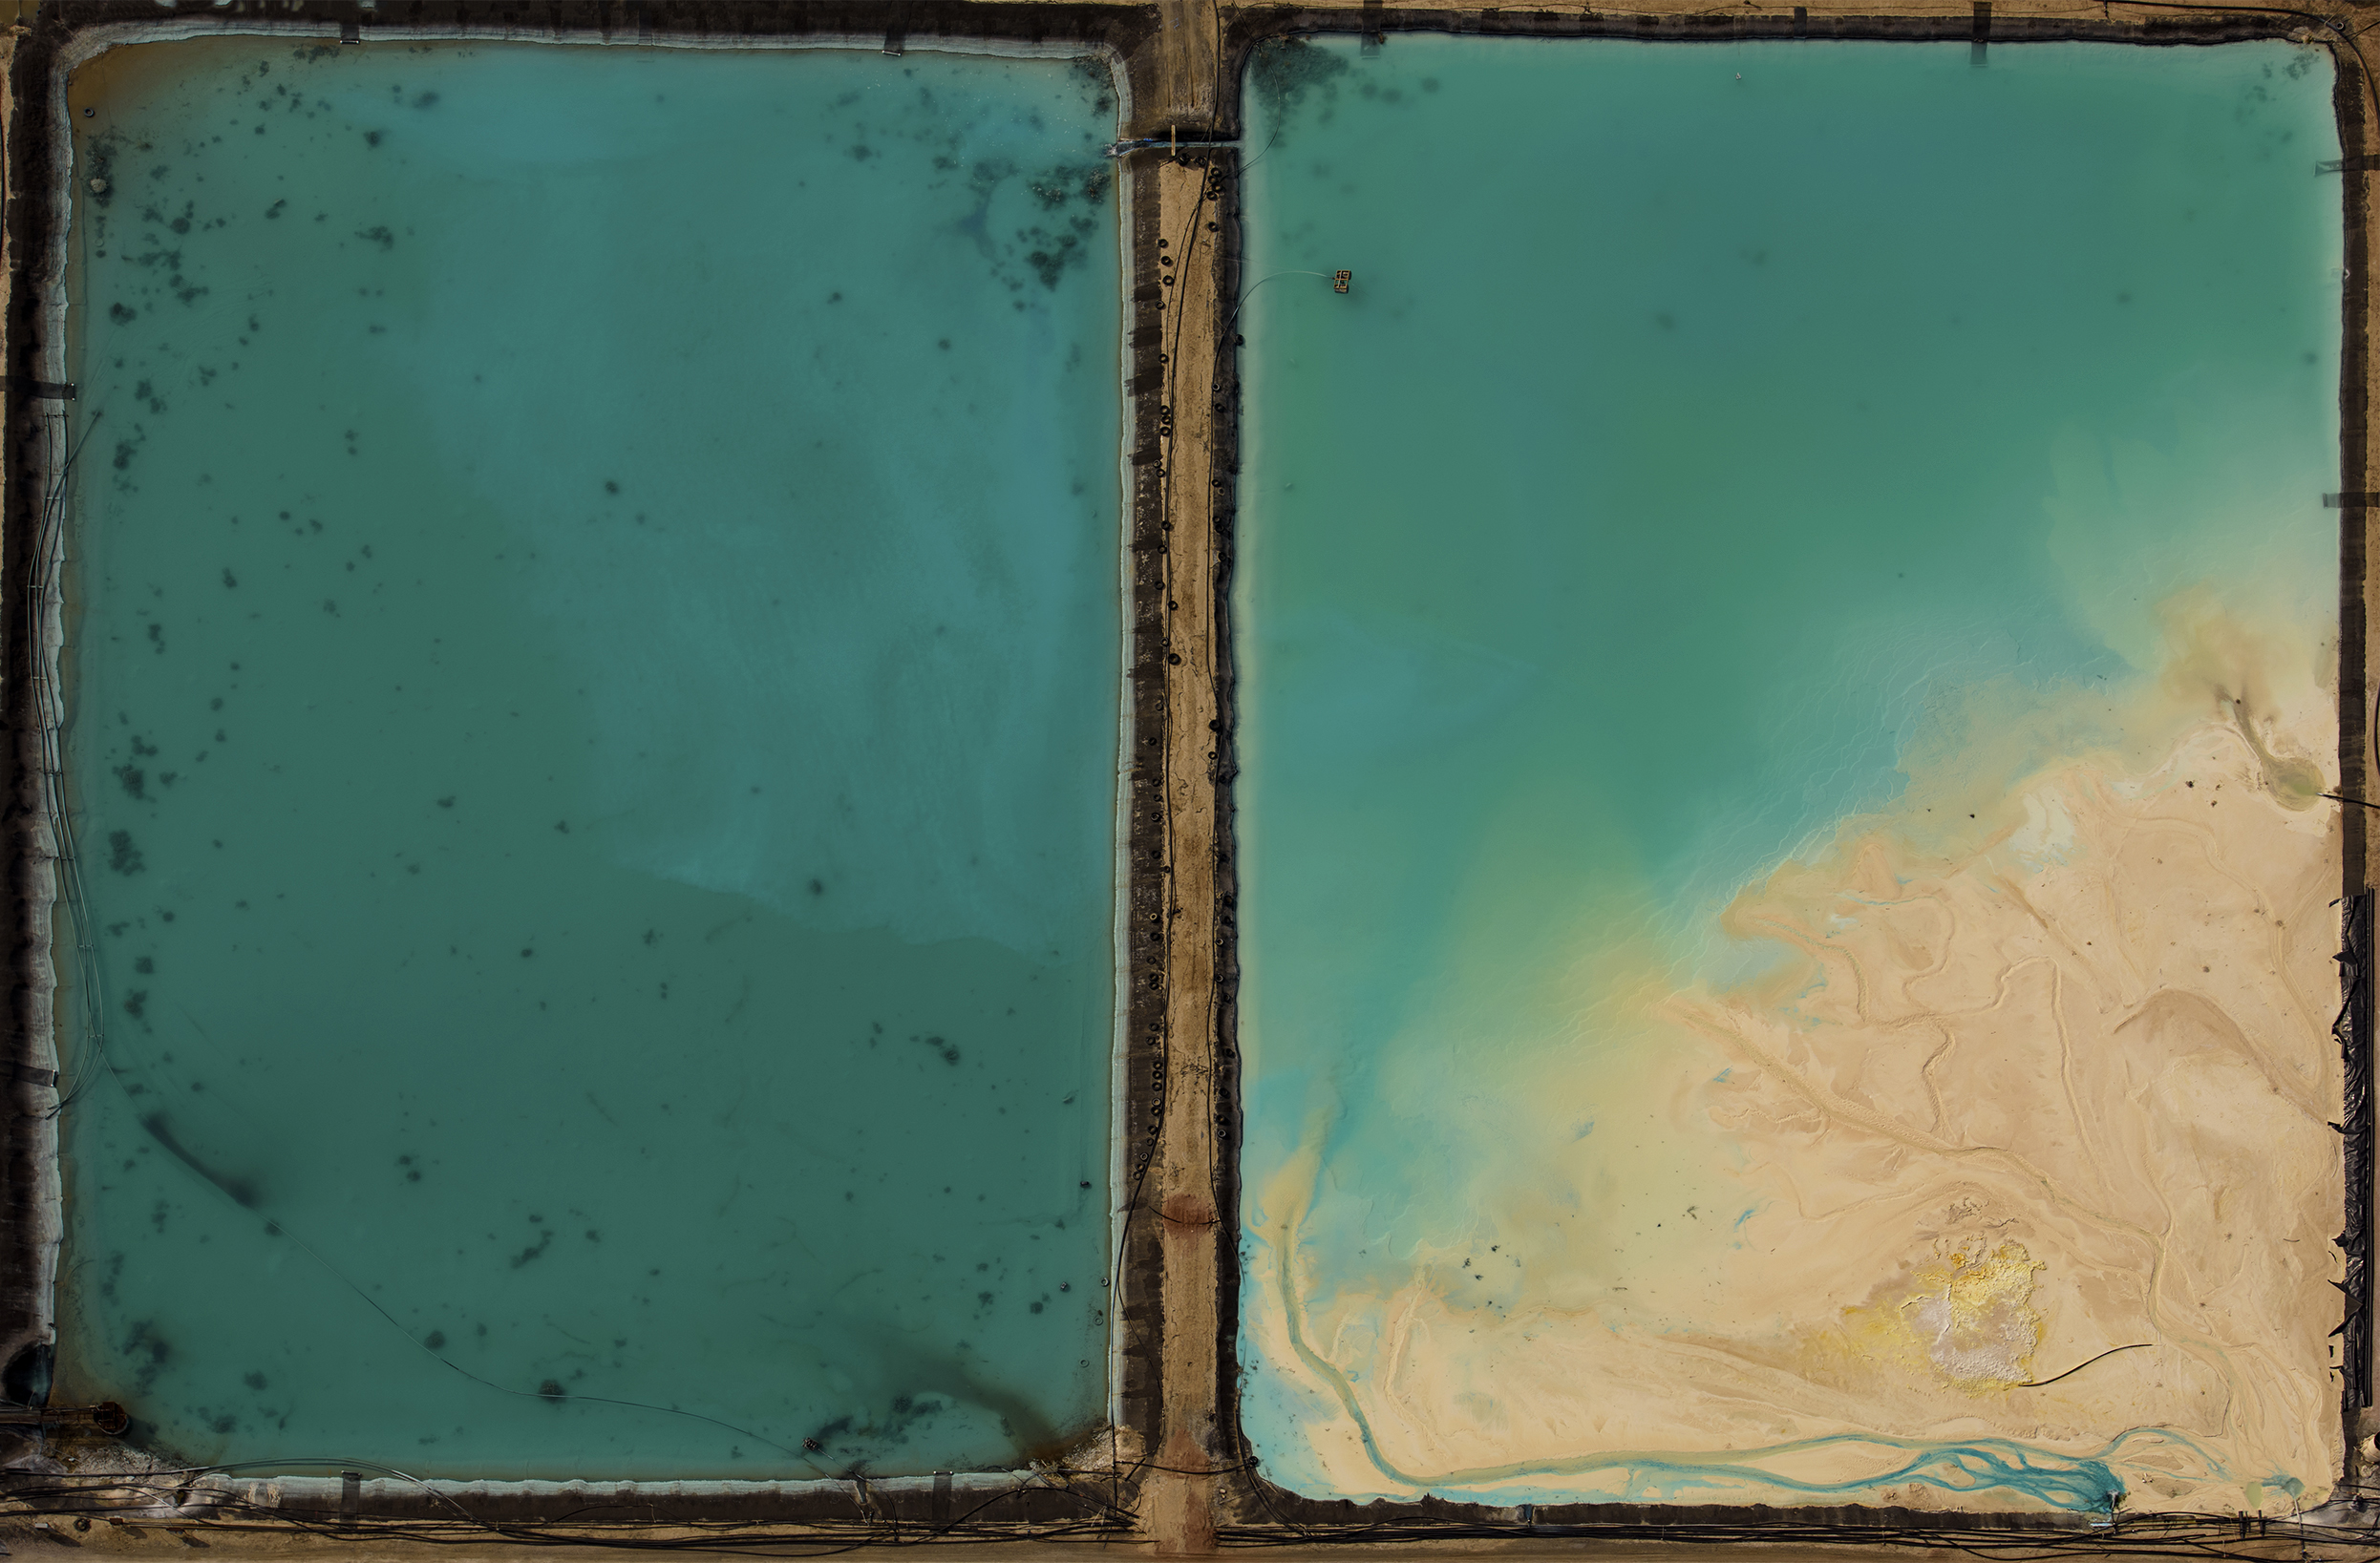 Industrial ponds, property of Waste Management, Inc., New Mexico. Aerial image (shot from a plane at 1,000 feet).